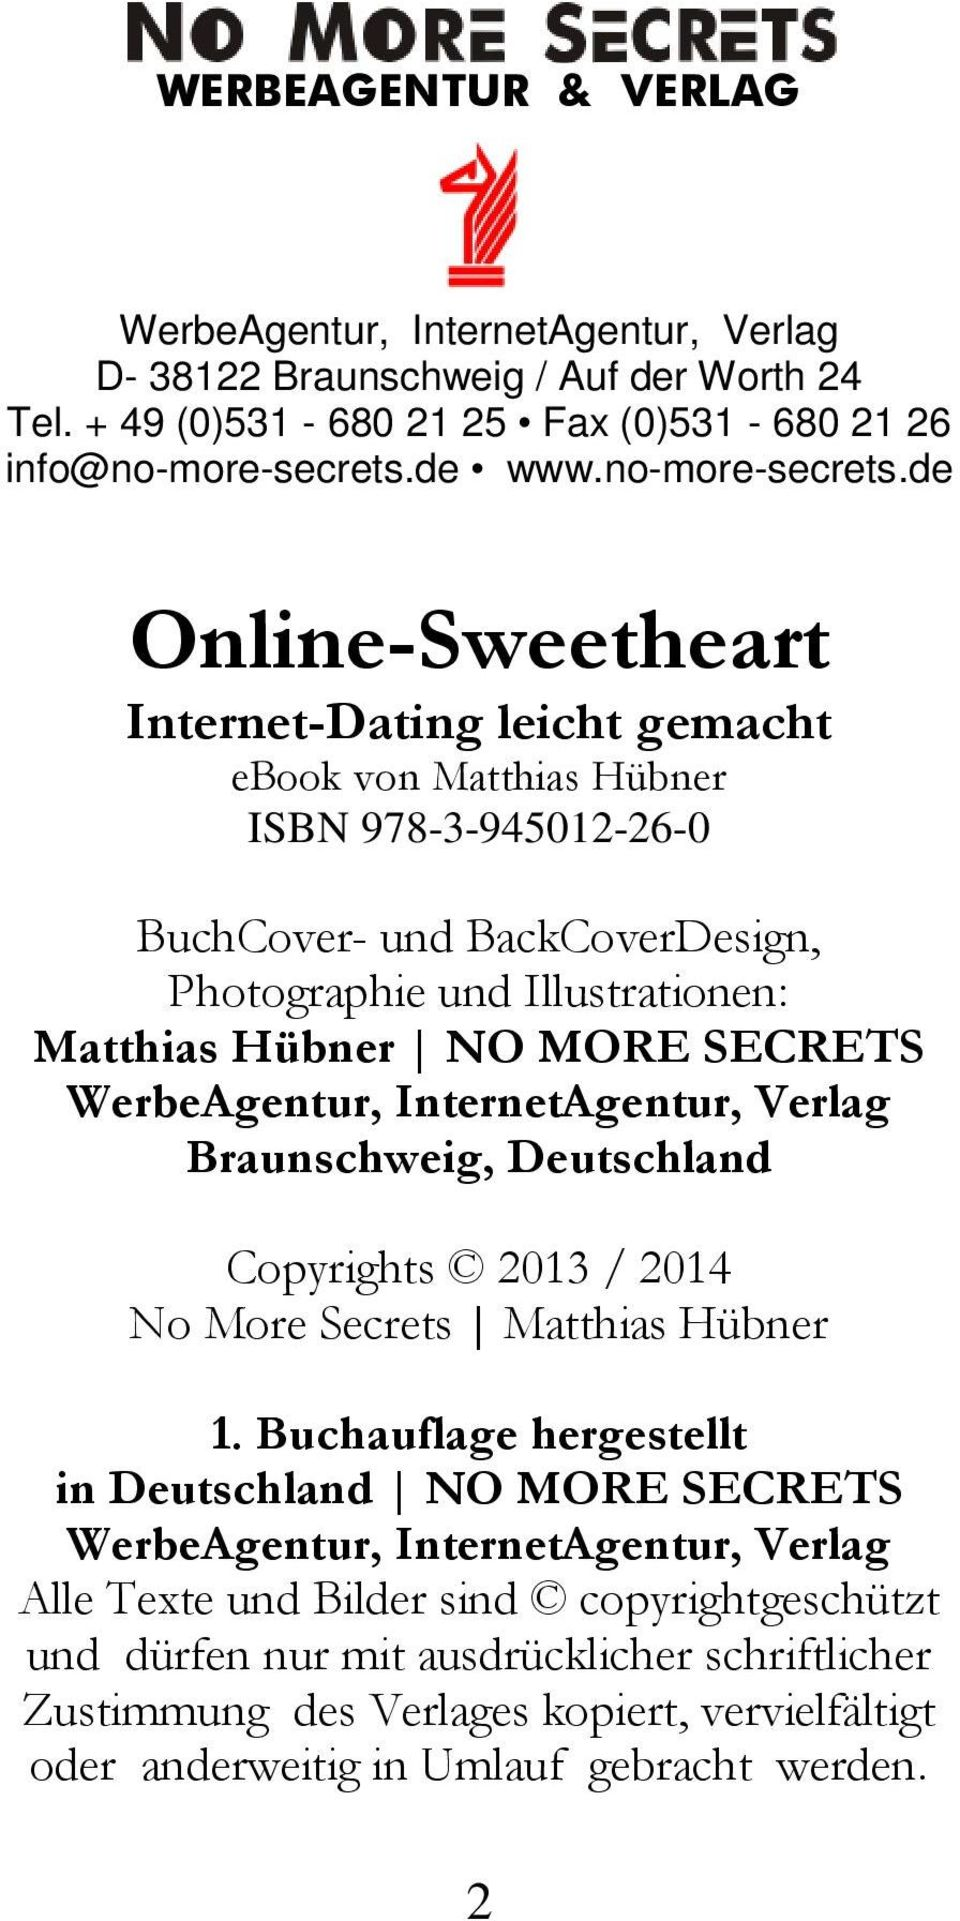 de Online-Sweetheart Internet-Dating leicht gemacht ebook von Matthias Hübner ISBN 978-3-945012-26-0 BuchCover- und BackCoverDesign, Photographie und Illustrationen: Matthias Hübner NO MORE SECRETS